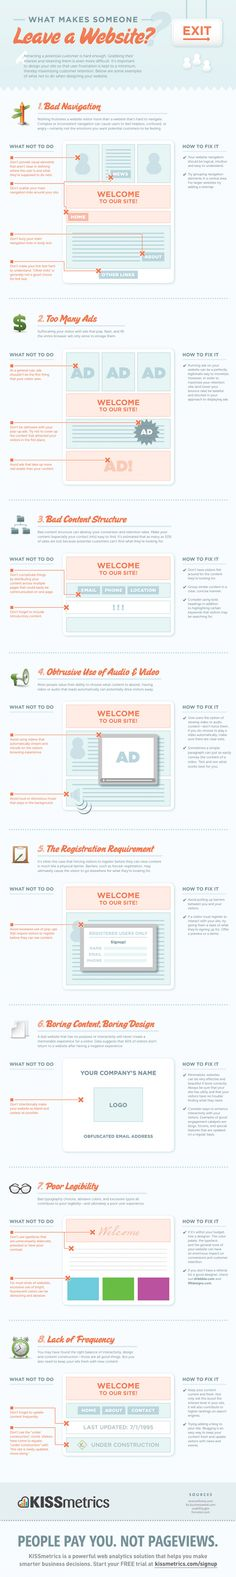 8 Biggest Mistakes Of Website Design (Infographic)